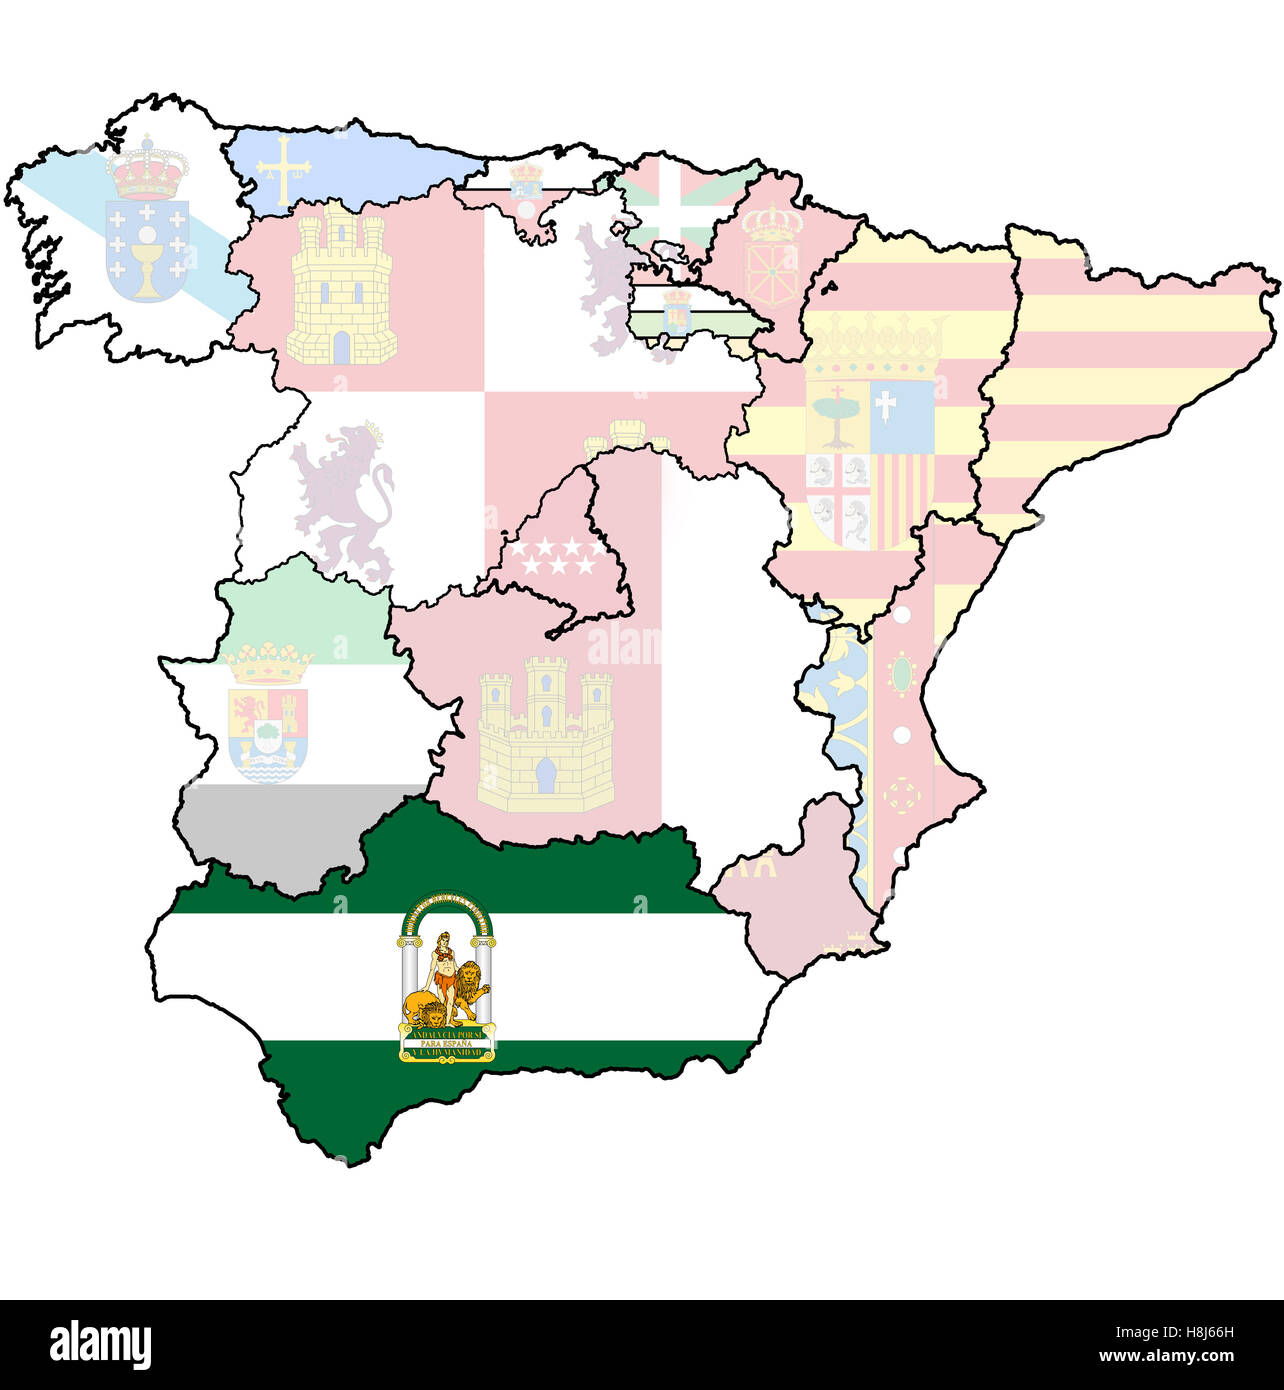 Map Of Spain Andalucia.Andalucia Region On Administration Map Of Regions Of Spain With